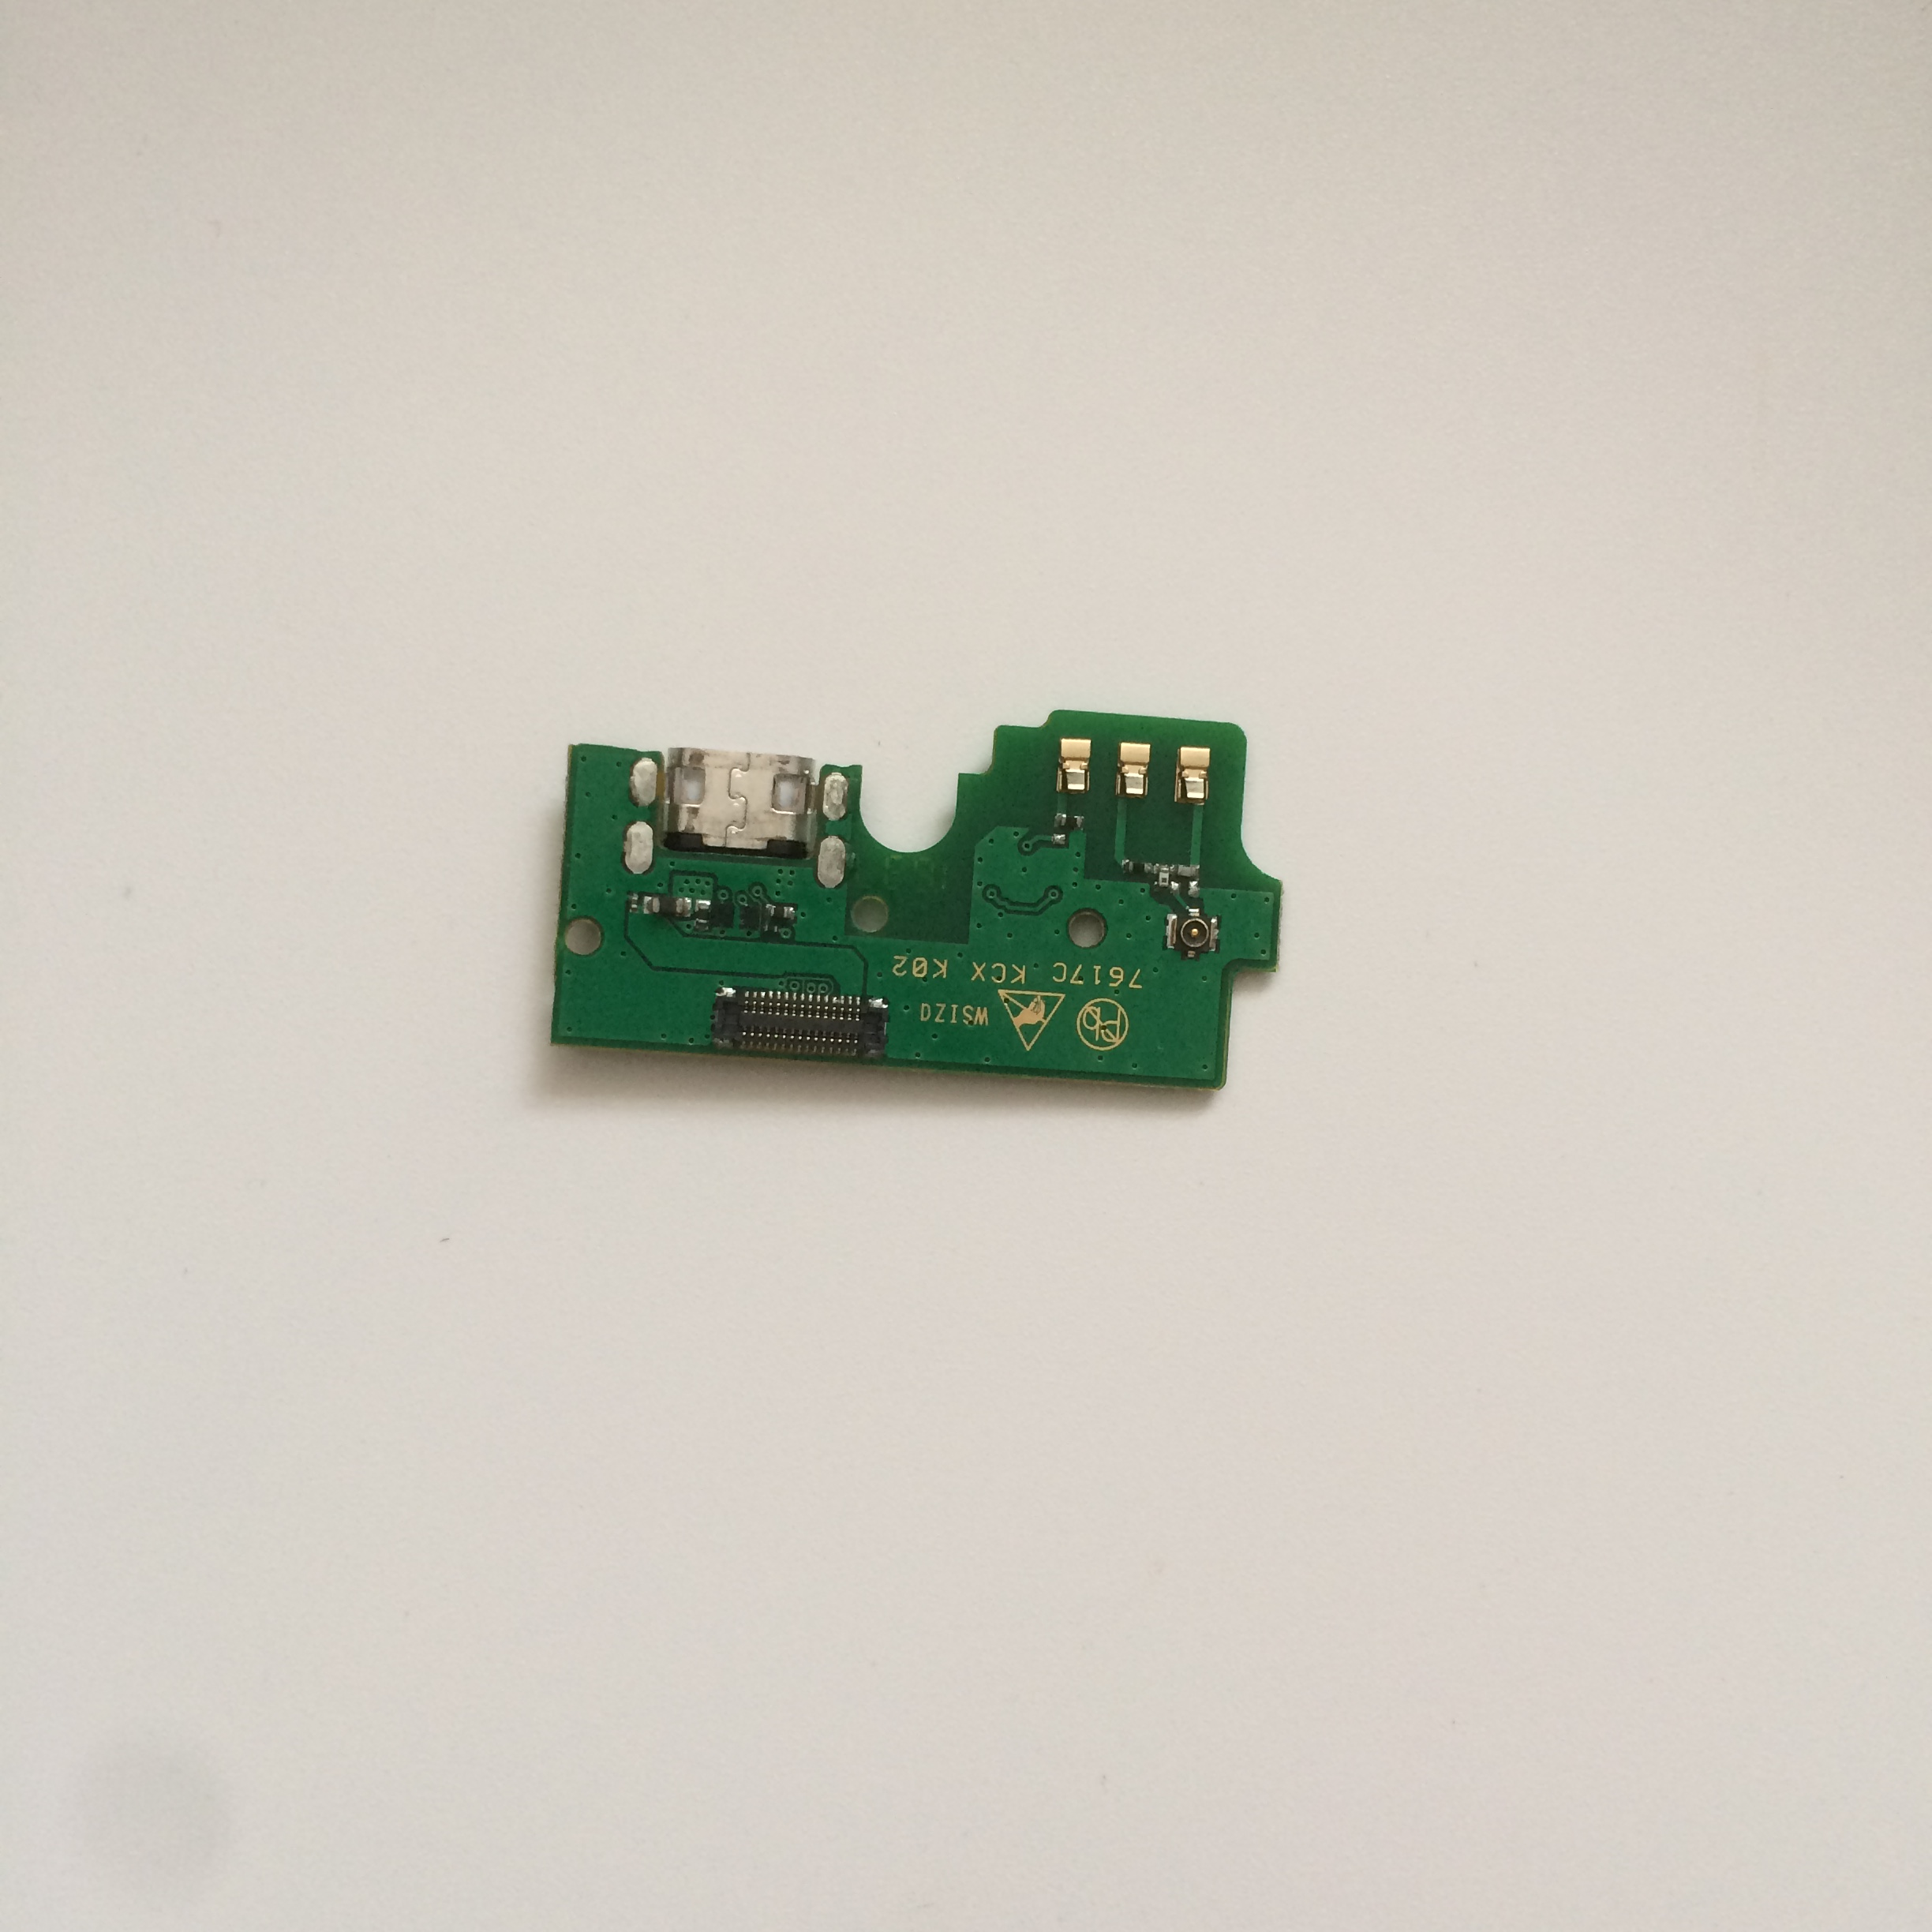 New Replacement USB Plug Charge Board For Homtom HT20 4.7 Inch 1280x720 MTK6737 Quad Core Cell Phone Free Shipping(China)